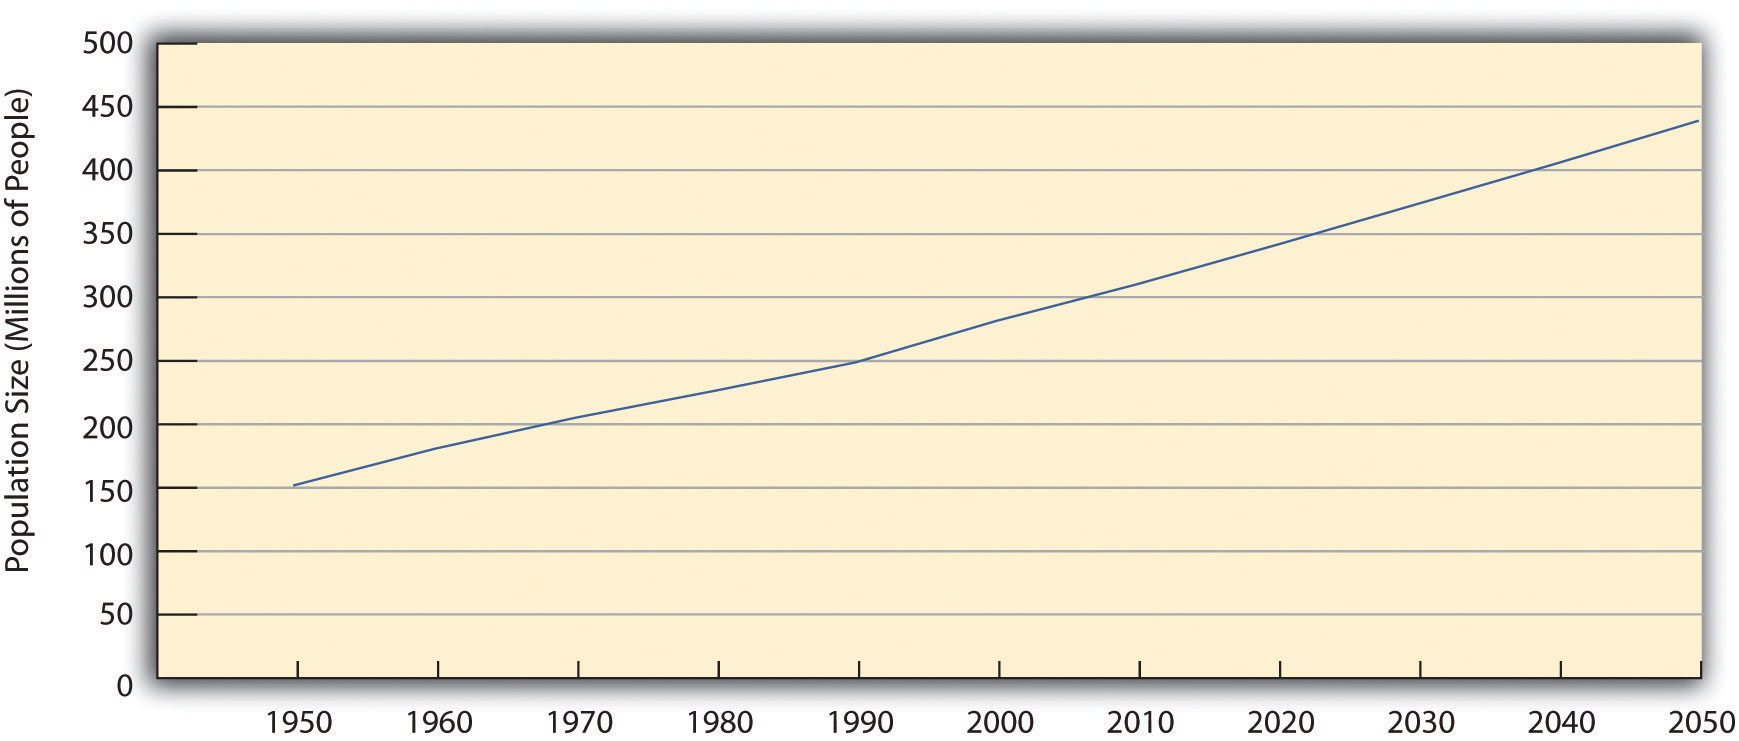 Past and Projected Size of the US Population, 1950-2050 shows a steady increase.